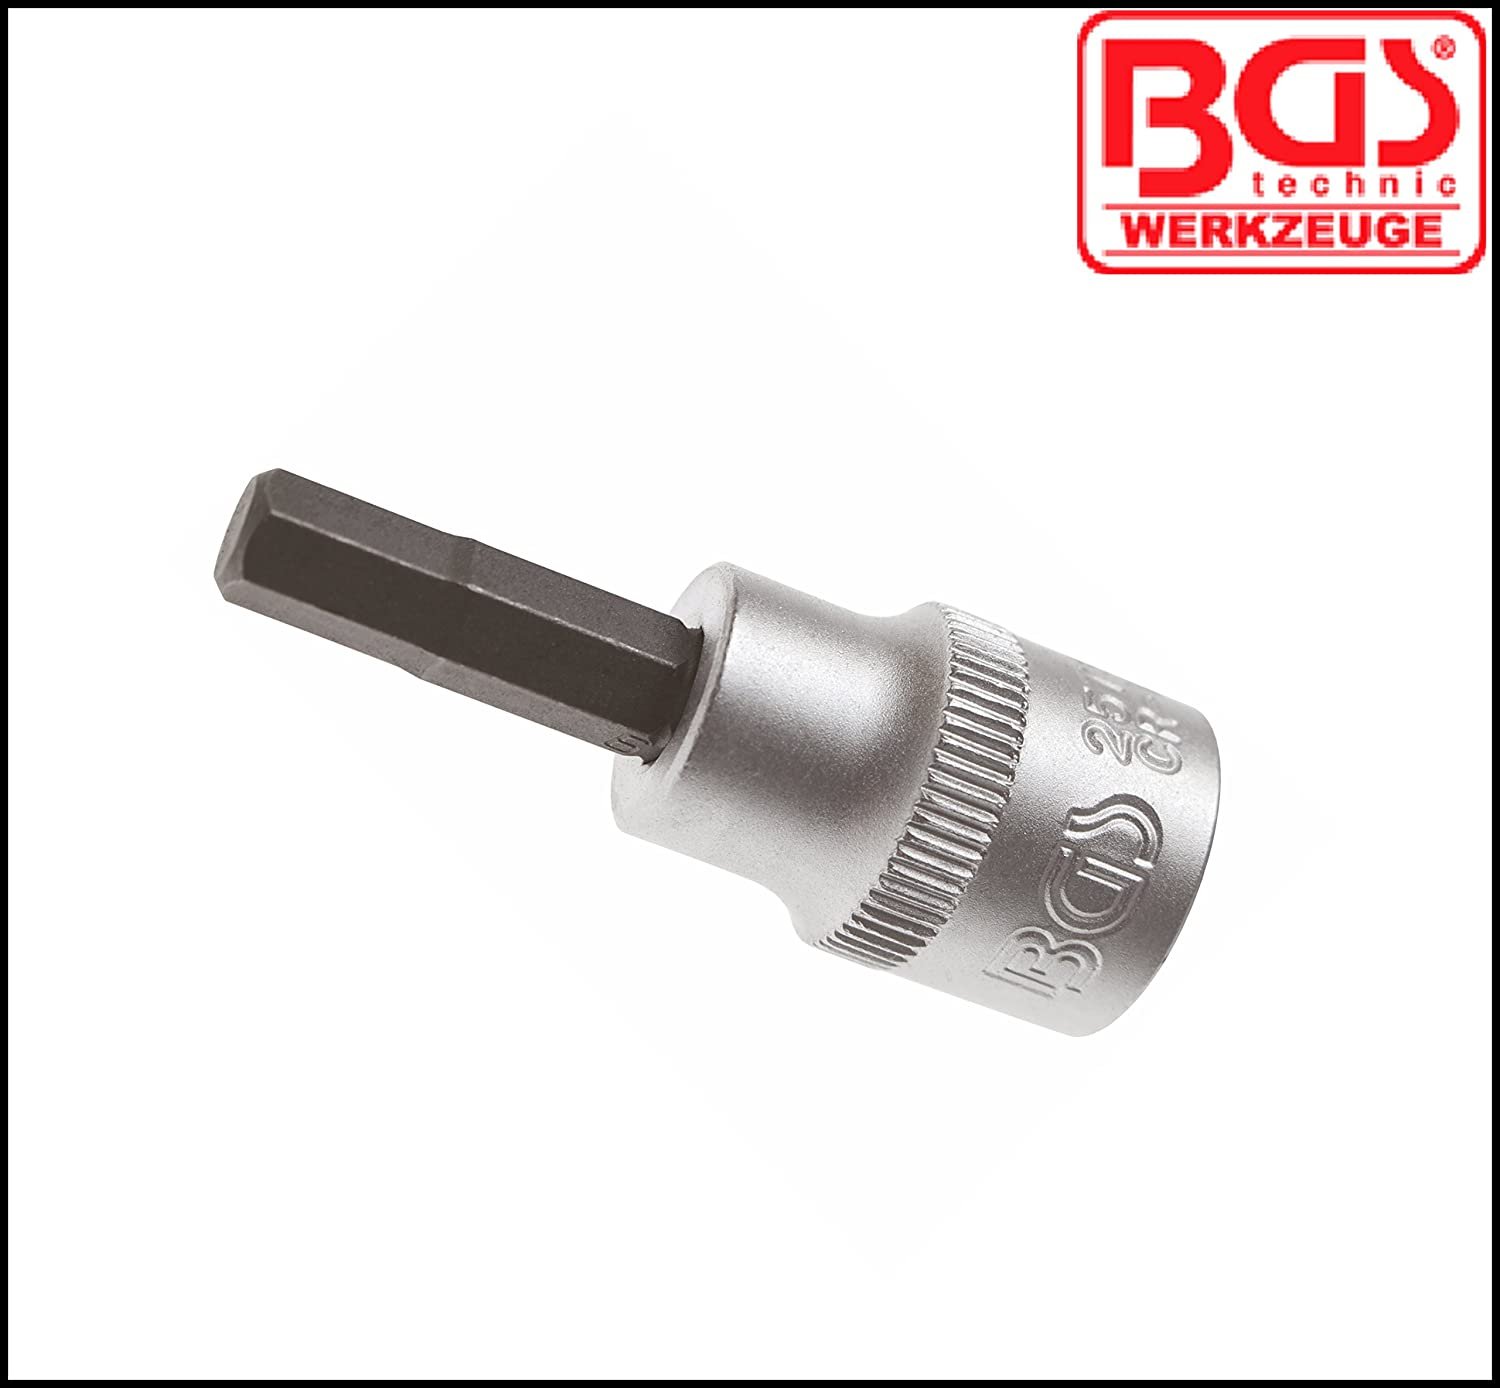 Pro Range 5 mm Internal Hex Bit Socket BGS-2578 3//8 Allen Key BGS